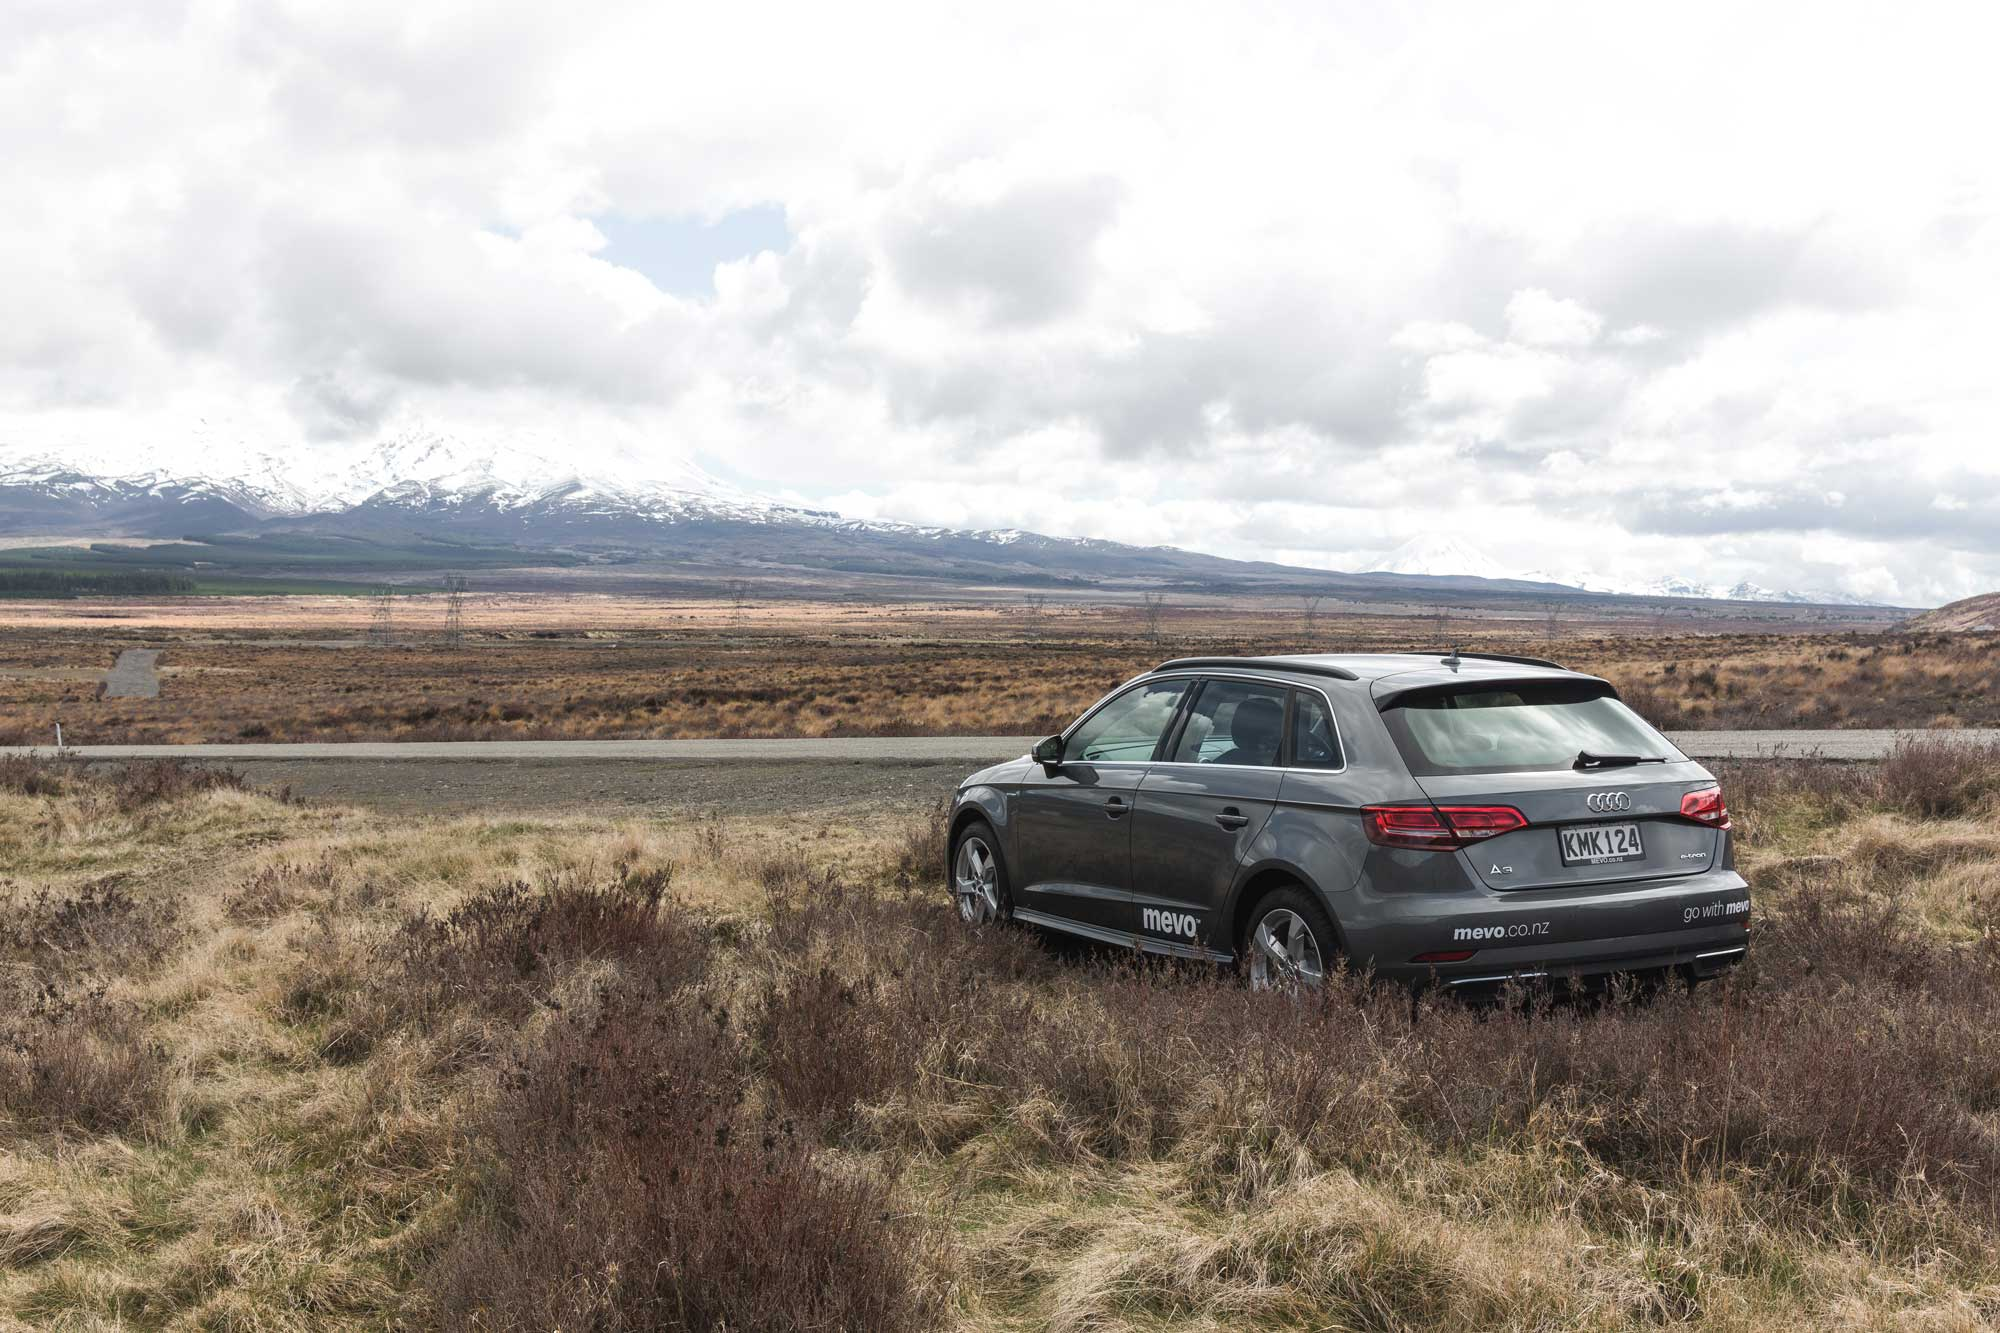 Audi A3 e-tron parked near the desert road